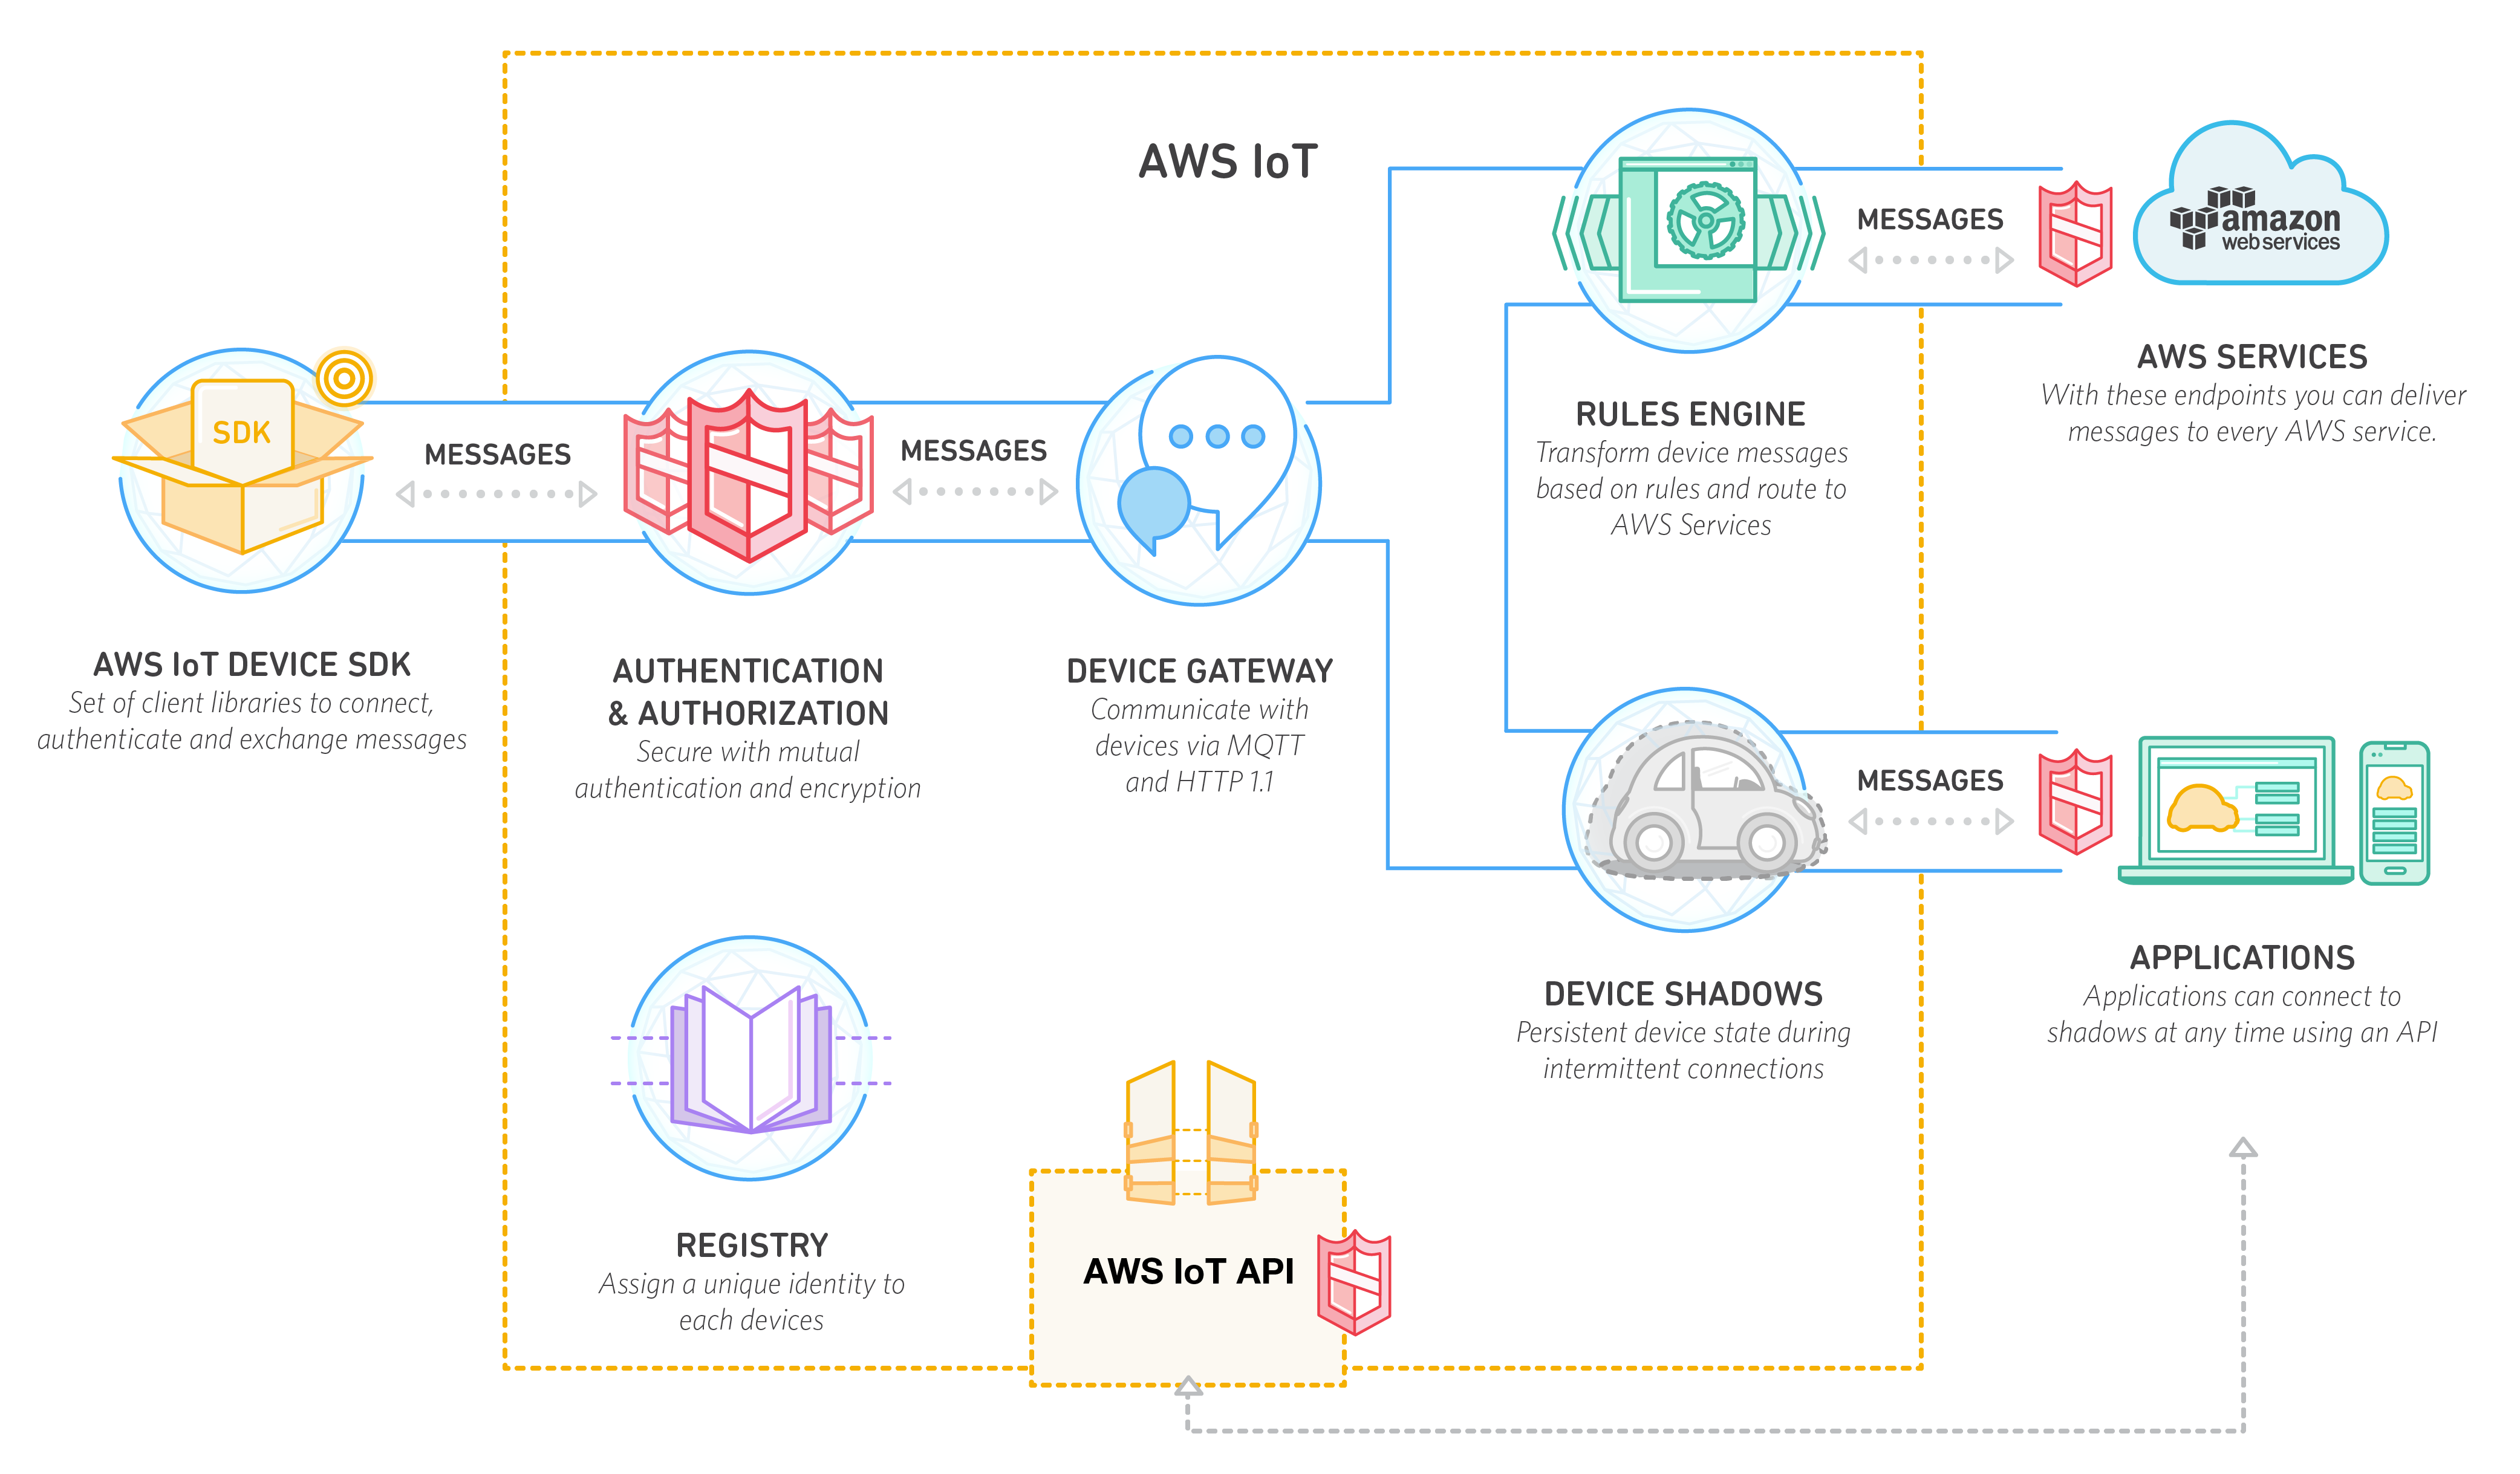 Figure 1   AWS IoT relies on the MQTT protocol for communication with the AWS IoT Device Gateway. A rules engine is then used to invoke actions based on the transported data from AWS services such as DynamoDB, Kinesis, Lambda, Simple Storage Service (S3), Simple Notification Services (SNS), and Simple Queue Service (SQS).